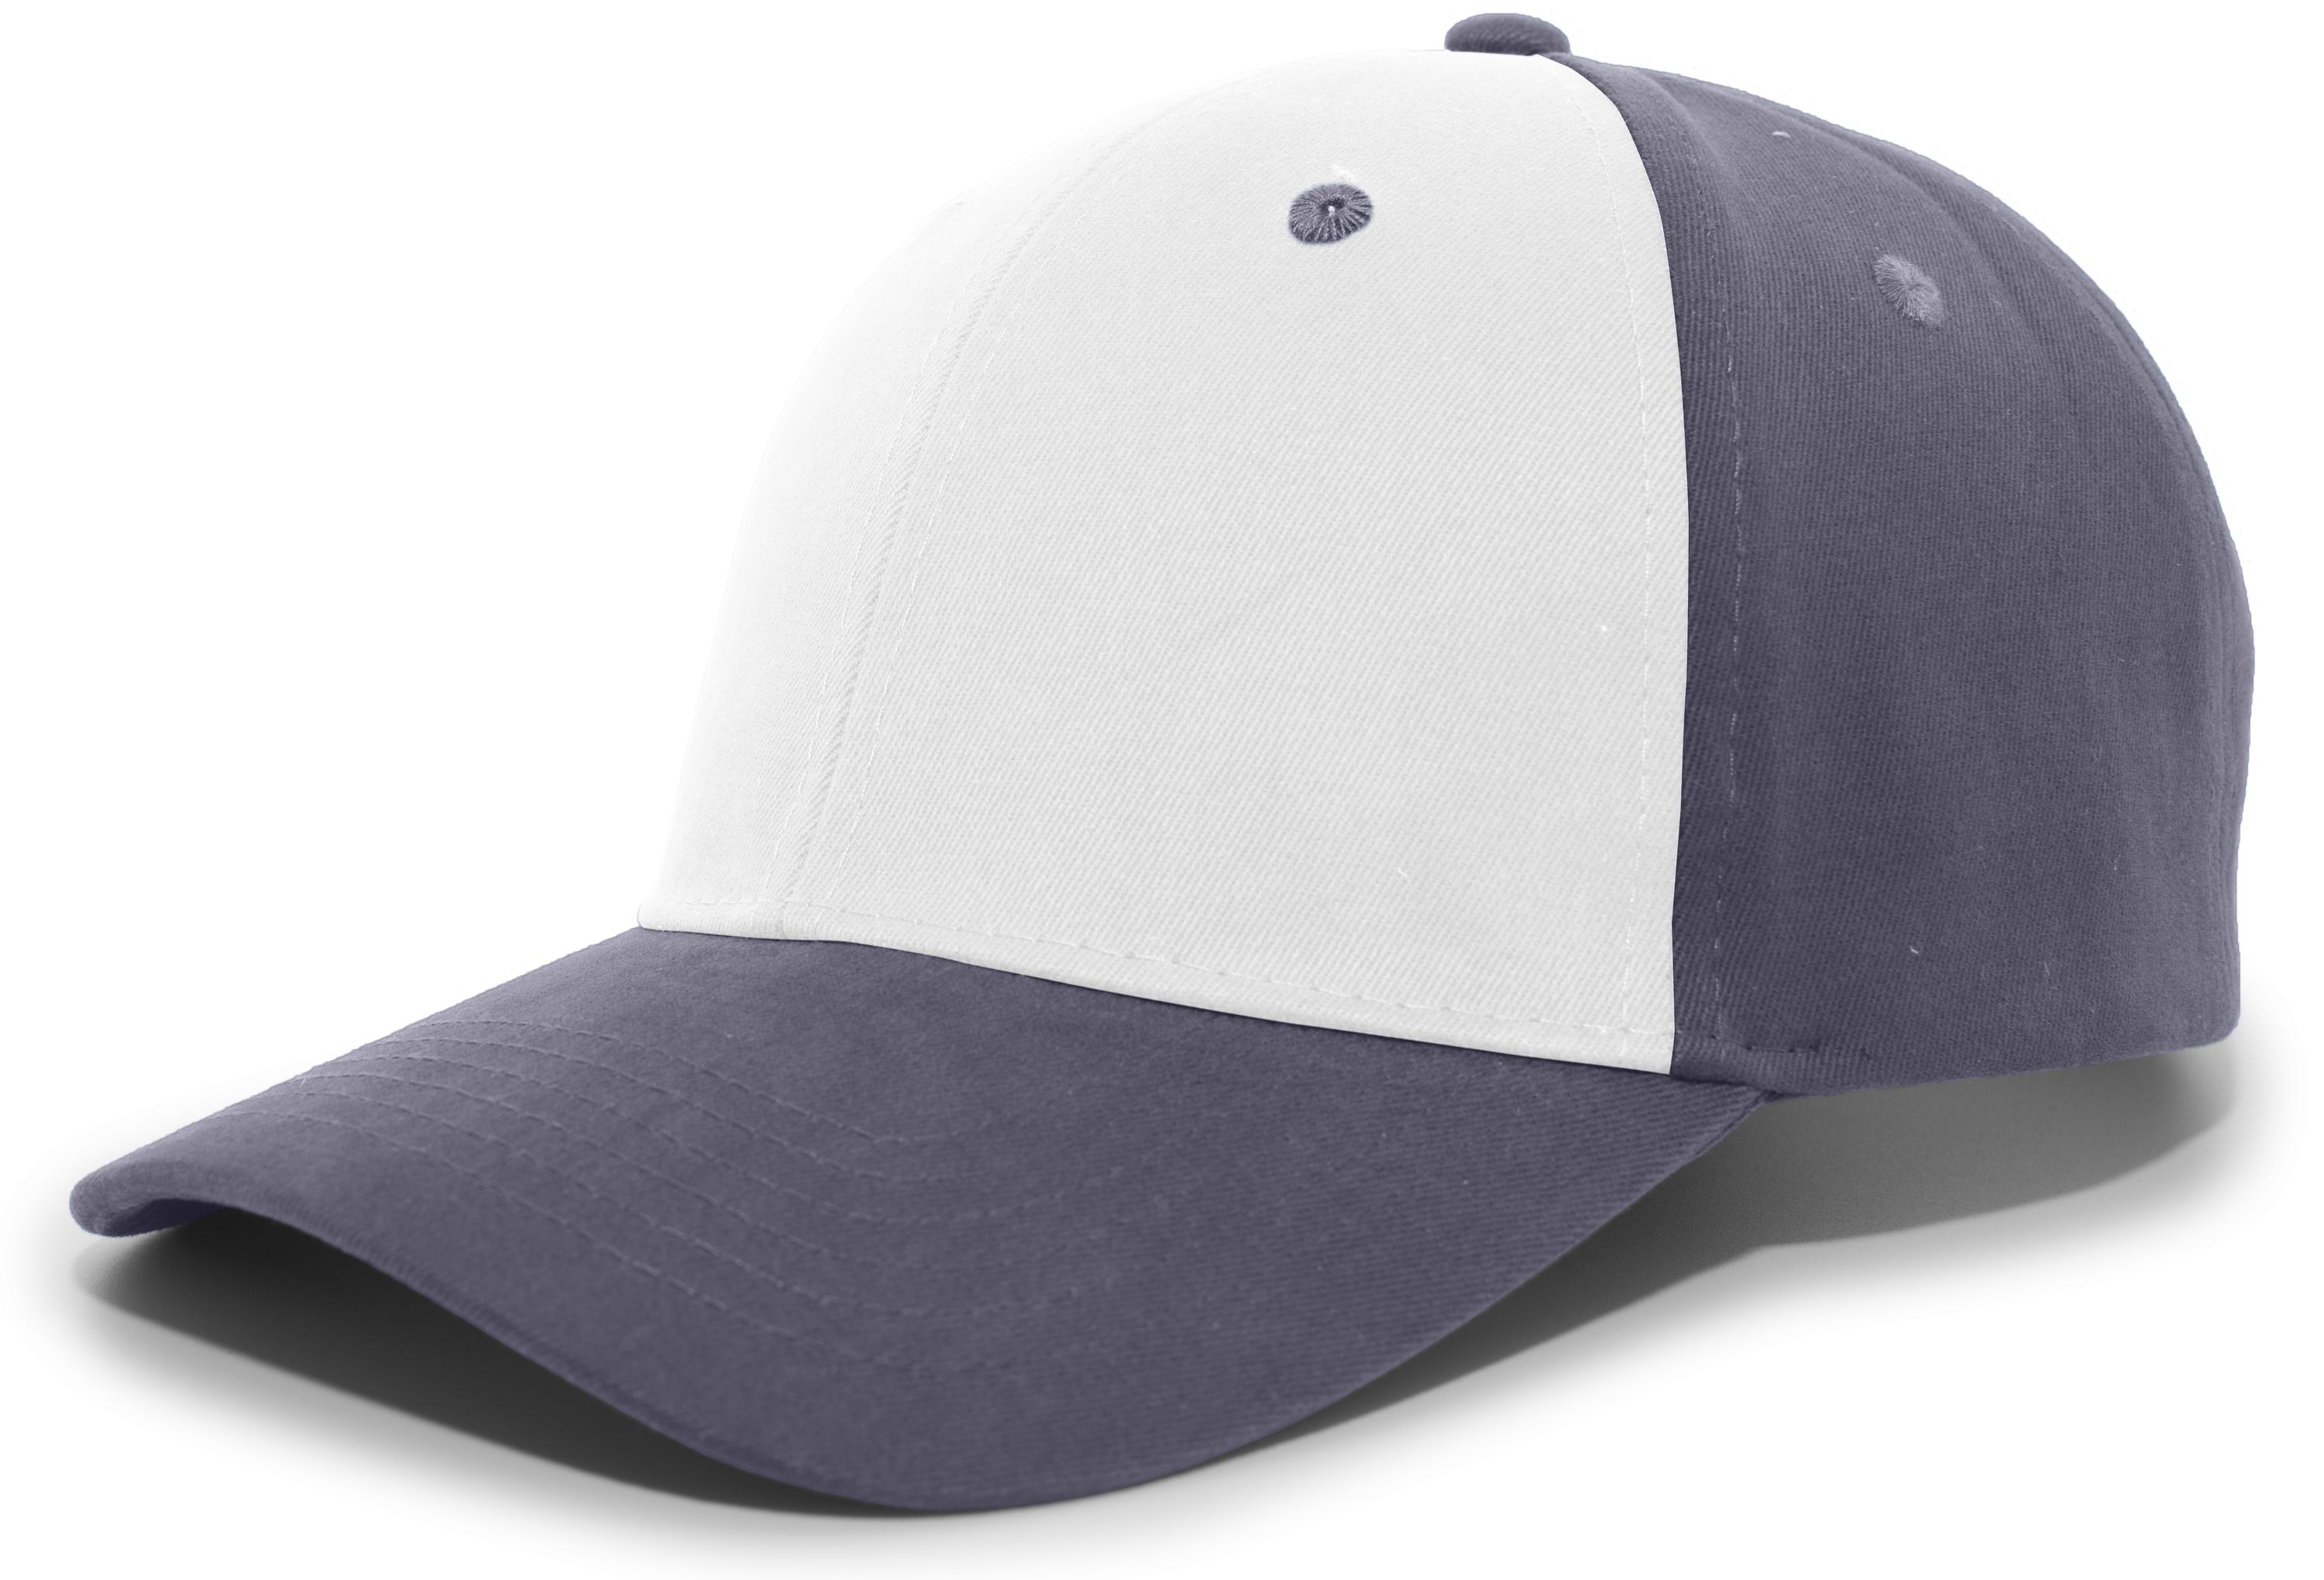 Brushed Cotton Twill Hook-And-Loop Adjustable Cap - WHITE/GRAPHITE/GRAPHITE